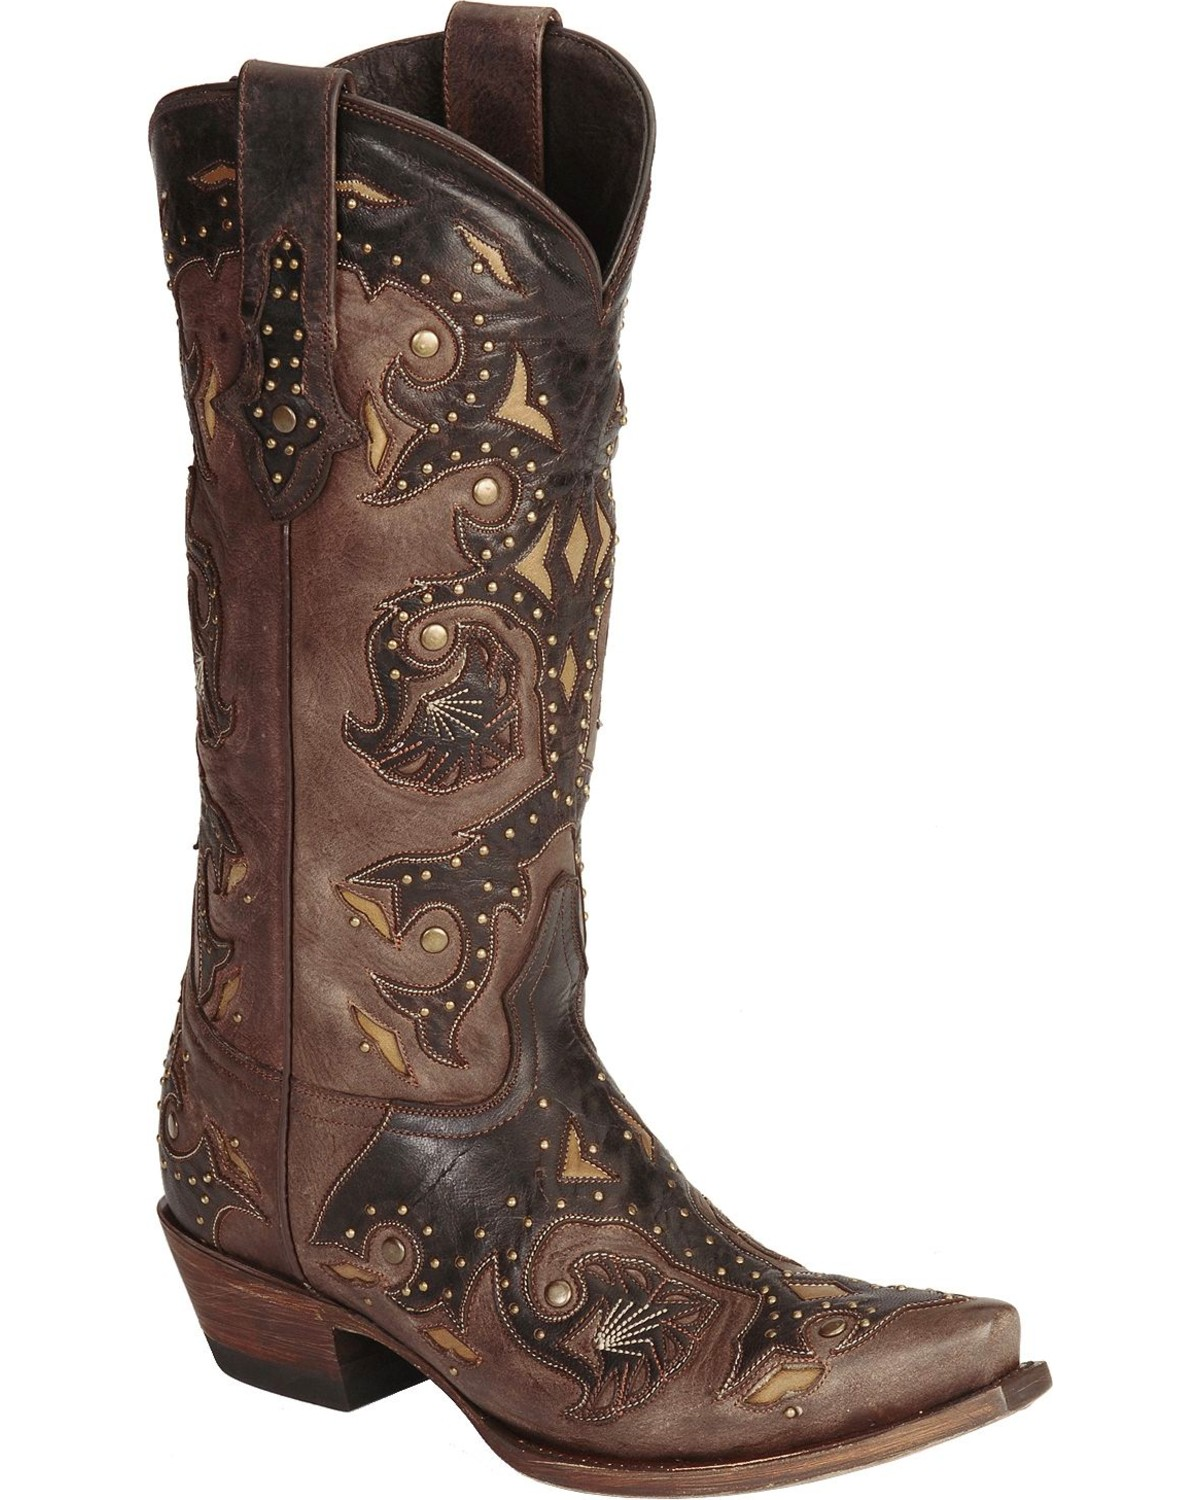 05a68cf27f9 Lucchese Women s Studded Scarlette Western Boots